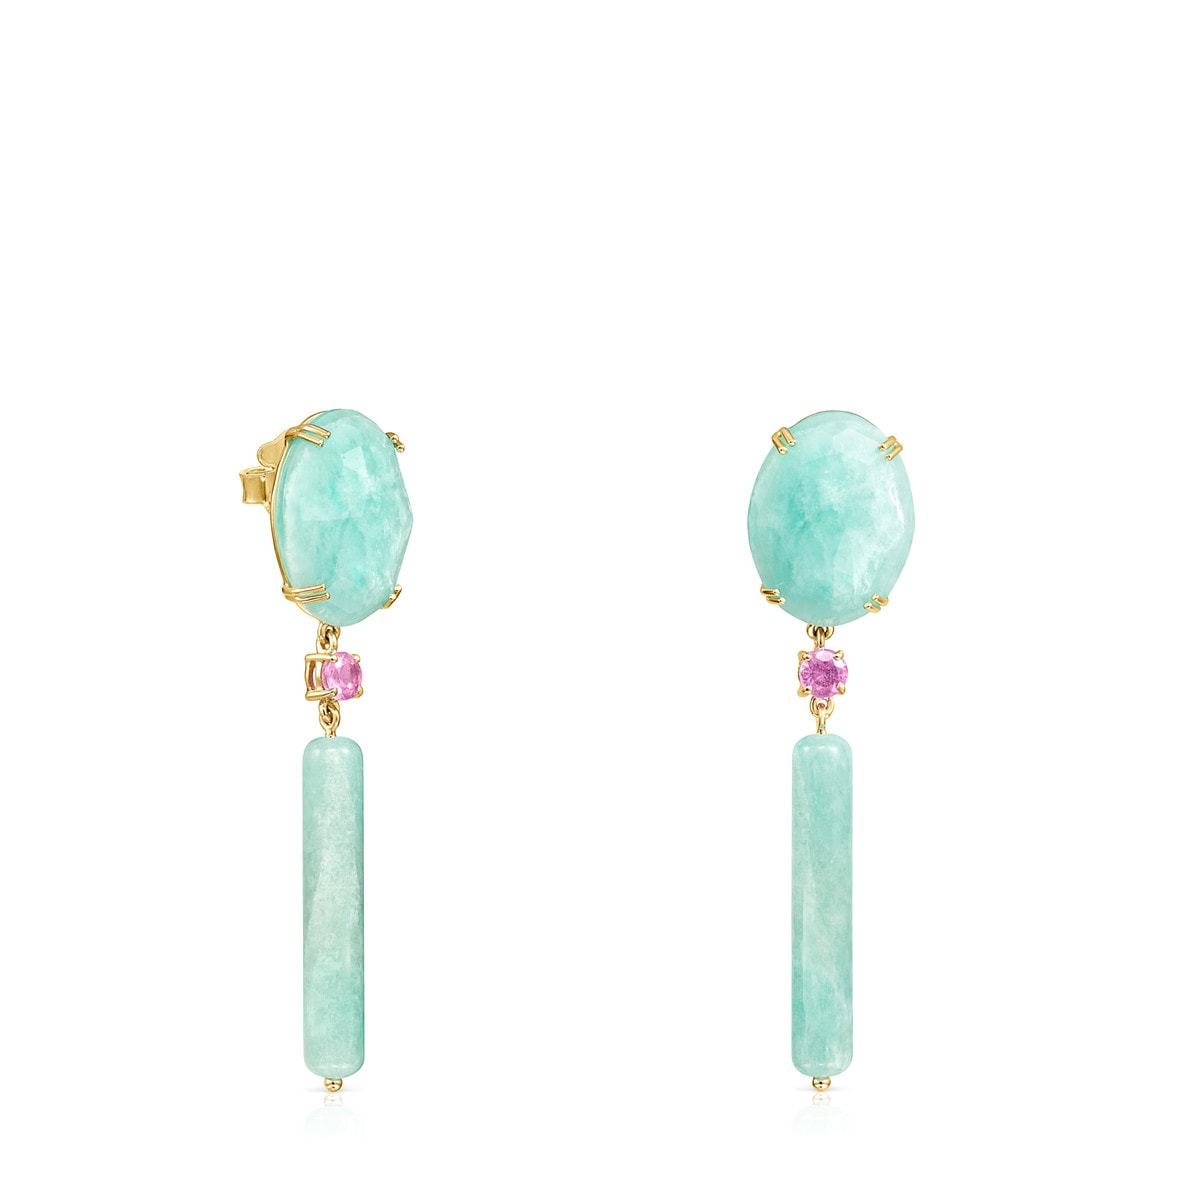 9a9a38b6e70ec5 Long Gold with Amazonite and Ruby Vita Earrings - Tous Site US